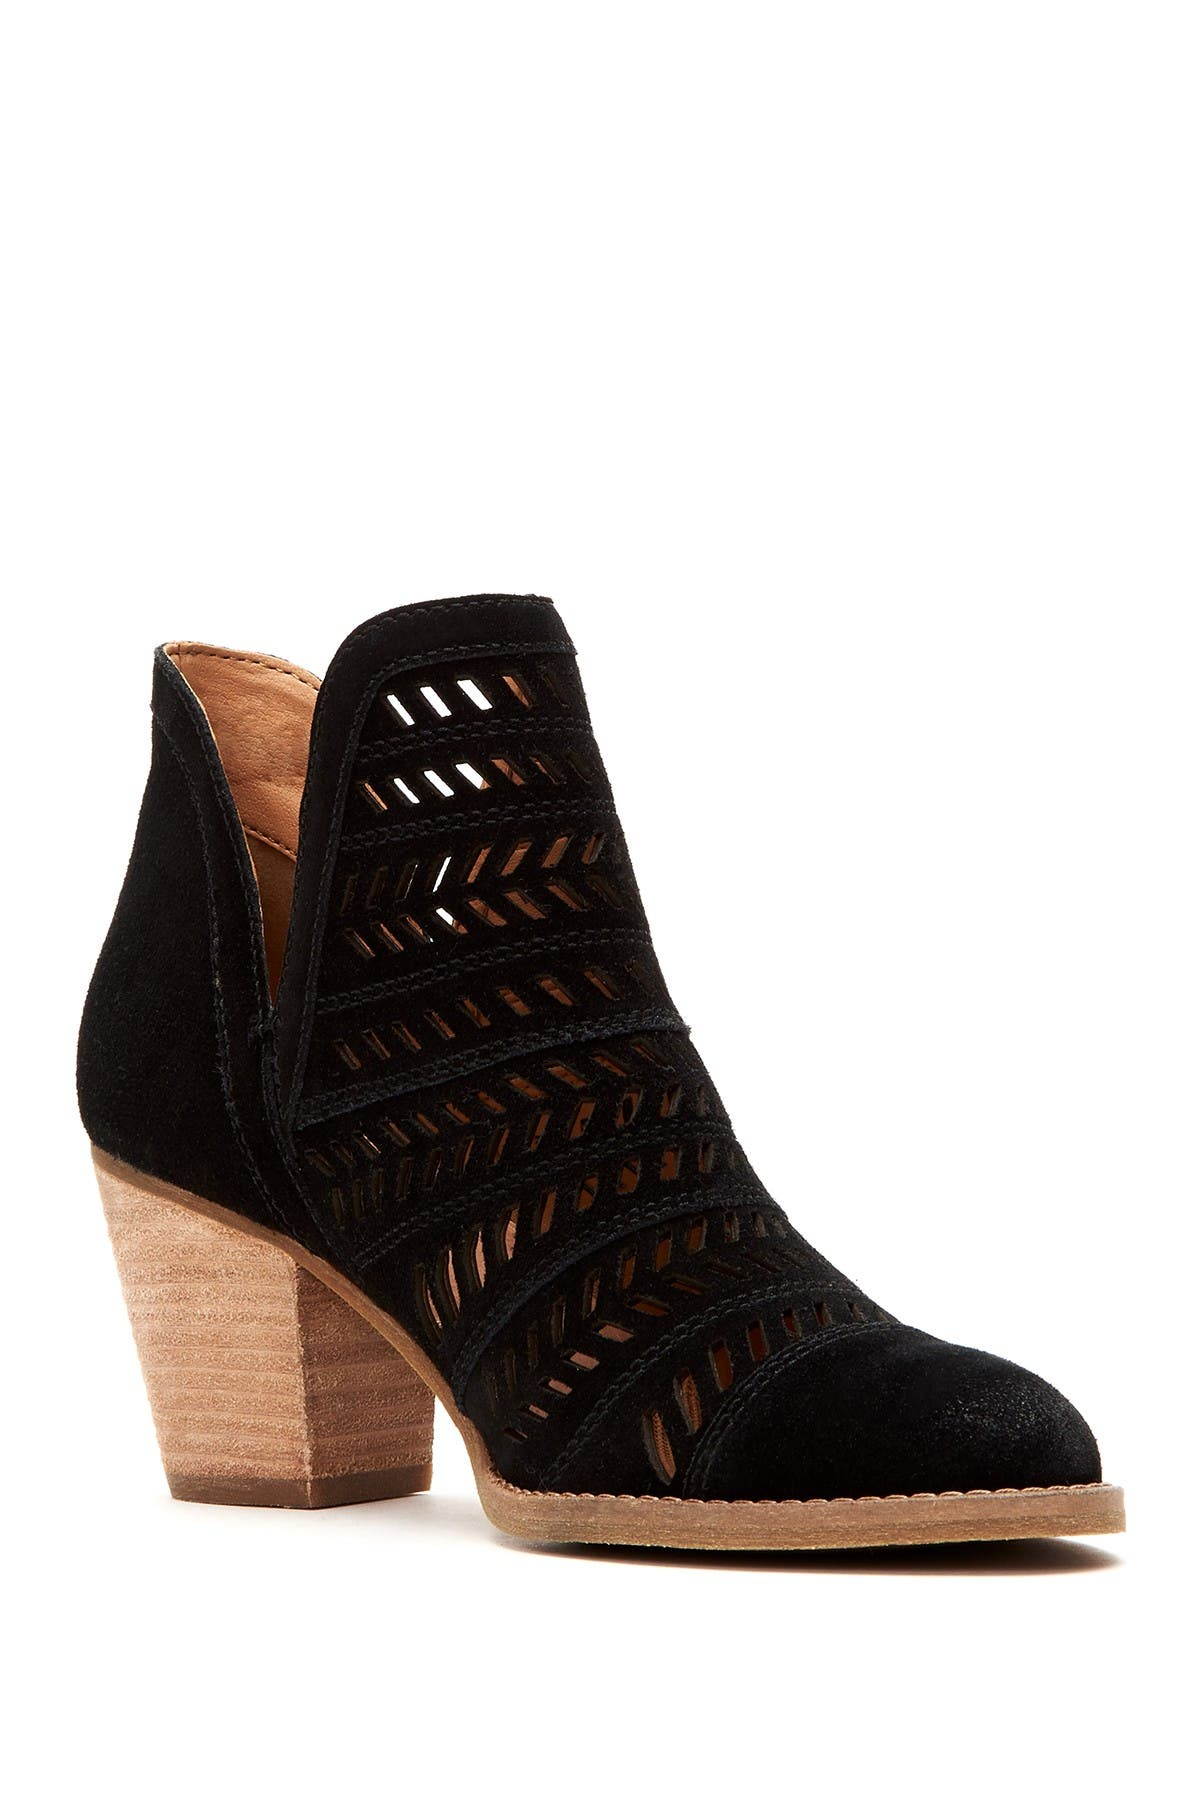 Image of Frye & Co Allister Feather Bootie